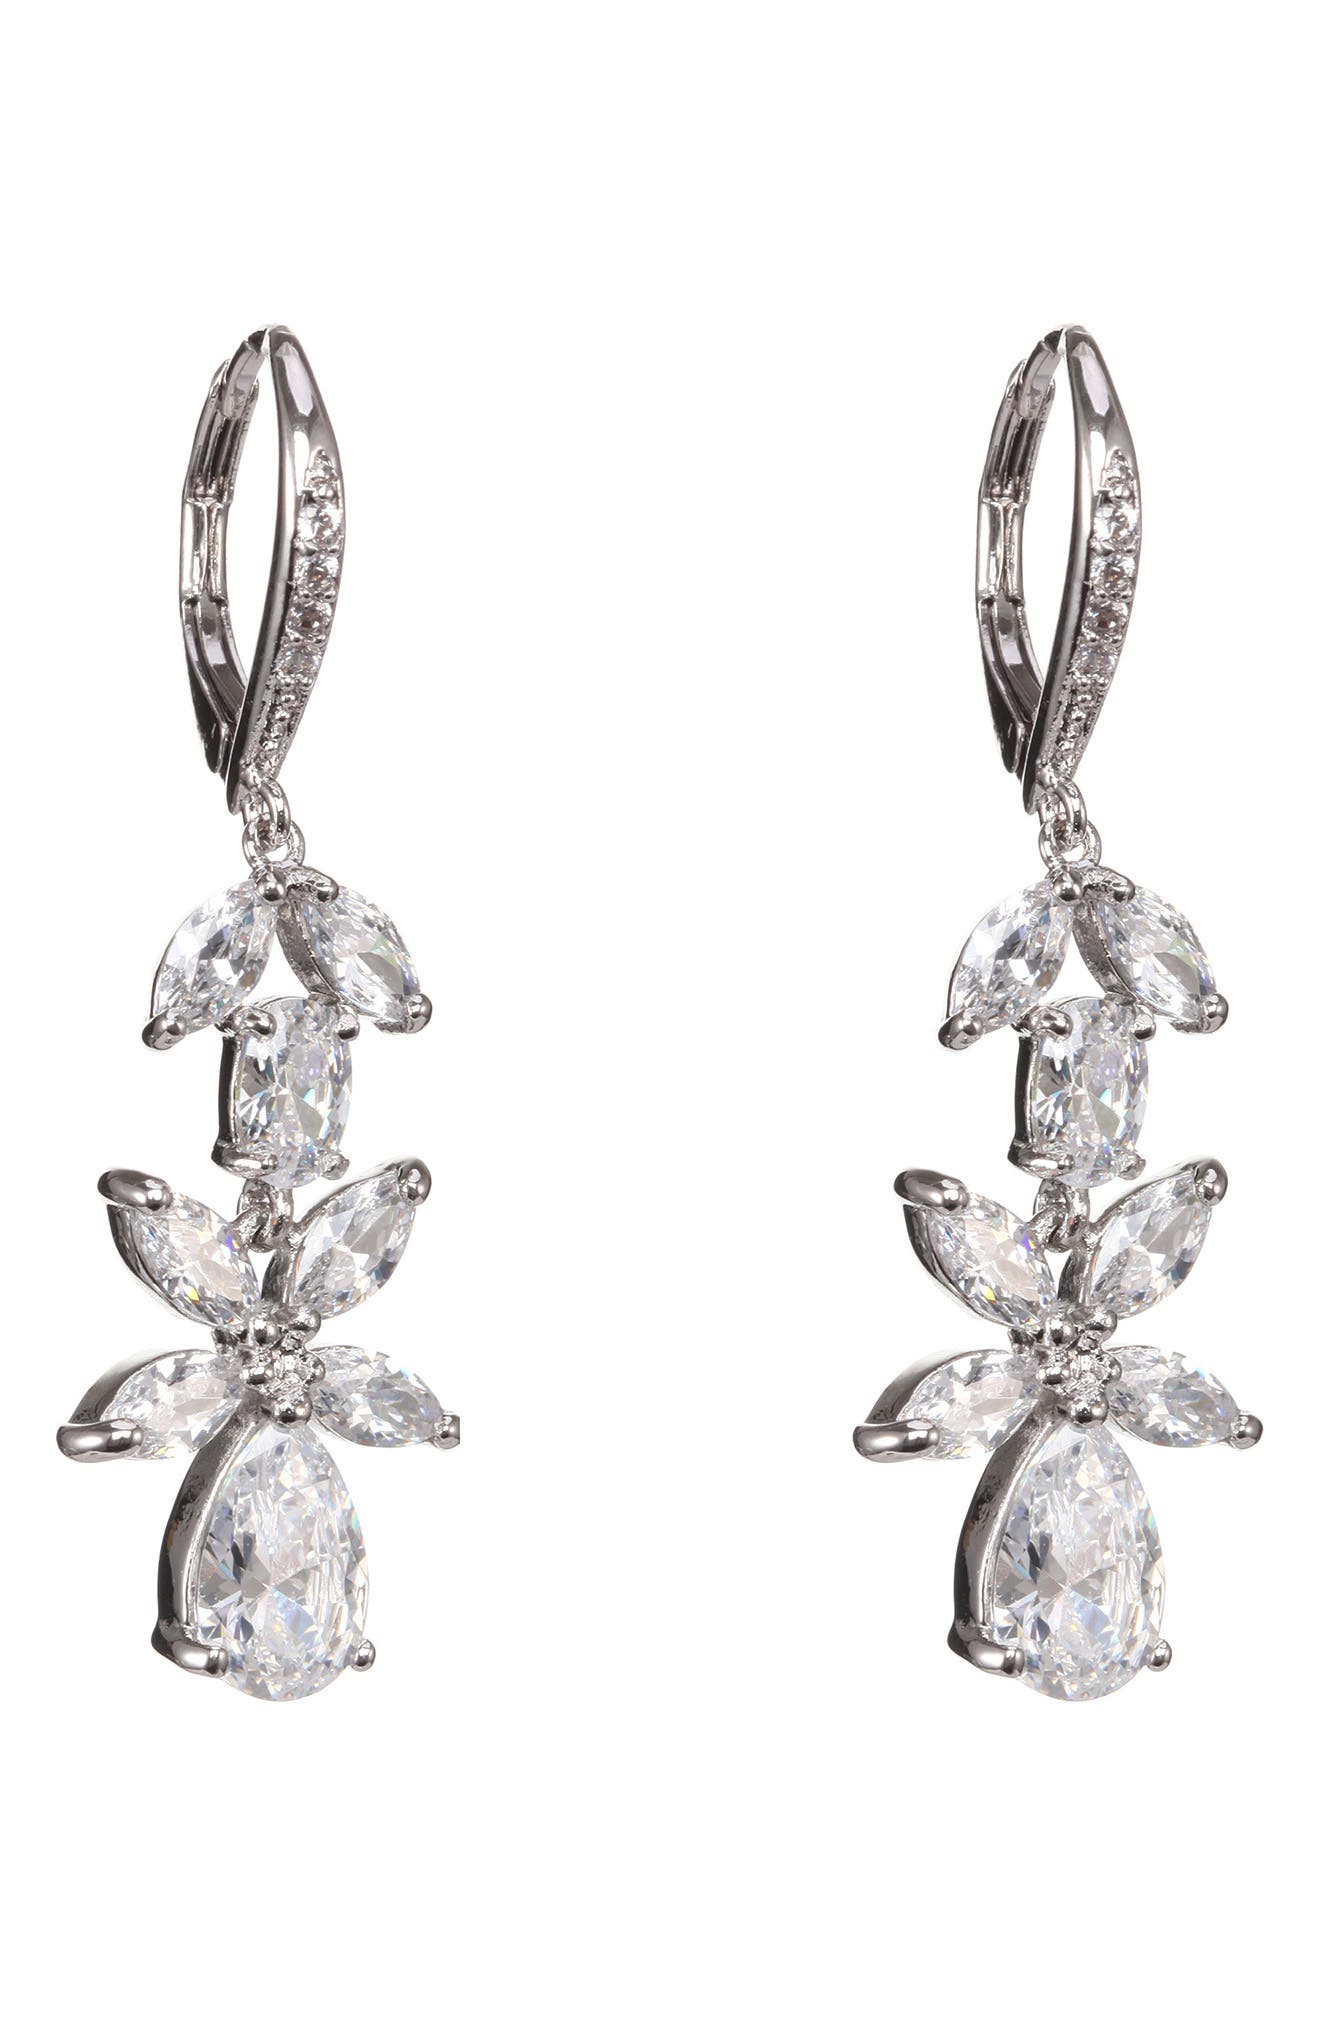 Floral Cubic Zirconia Earrings,                             Alternate thumbnail 3, color,                             White/ Silver